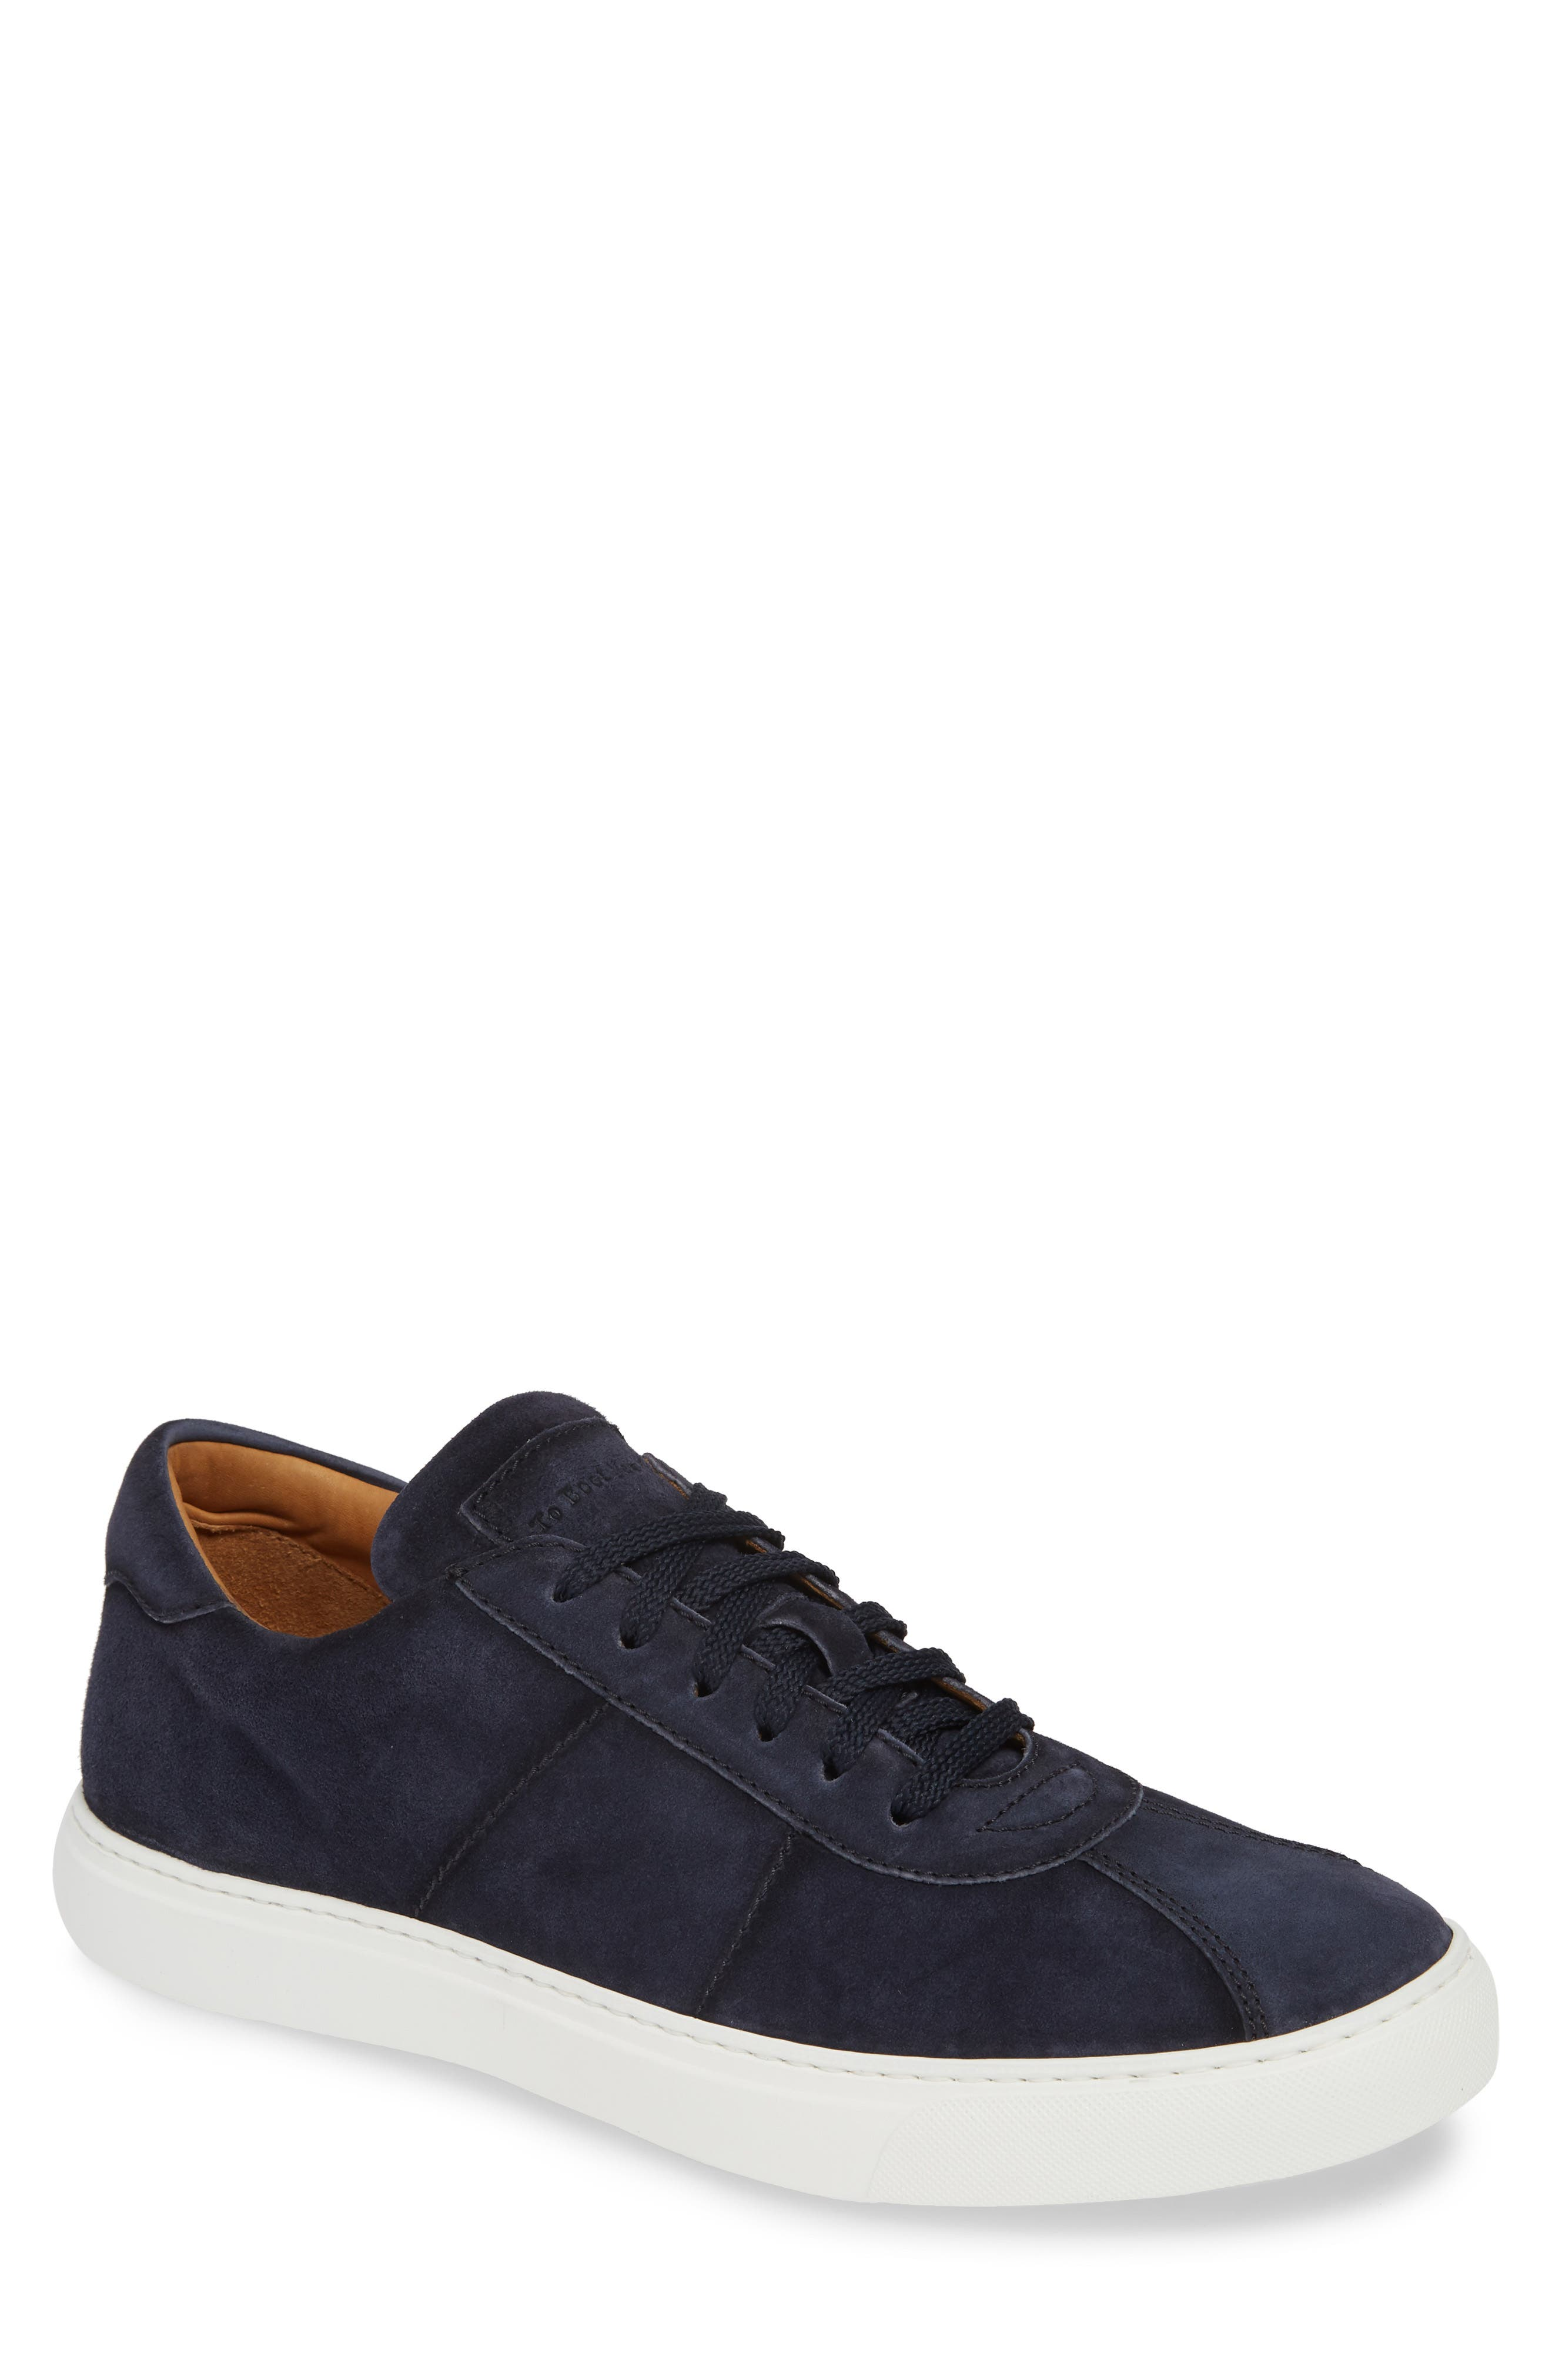 To Boot New York Charger Low Top Sneaker, Blue